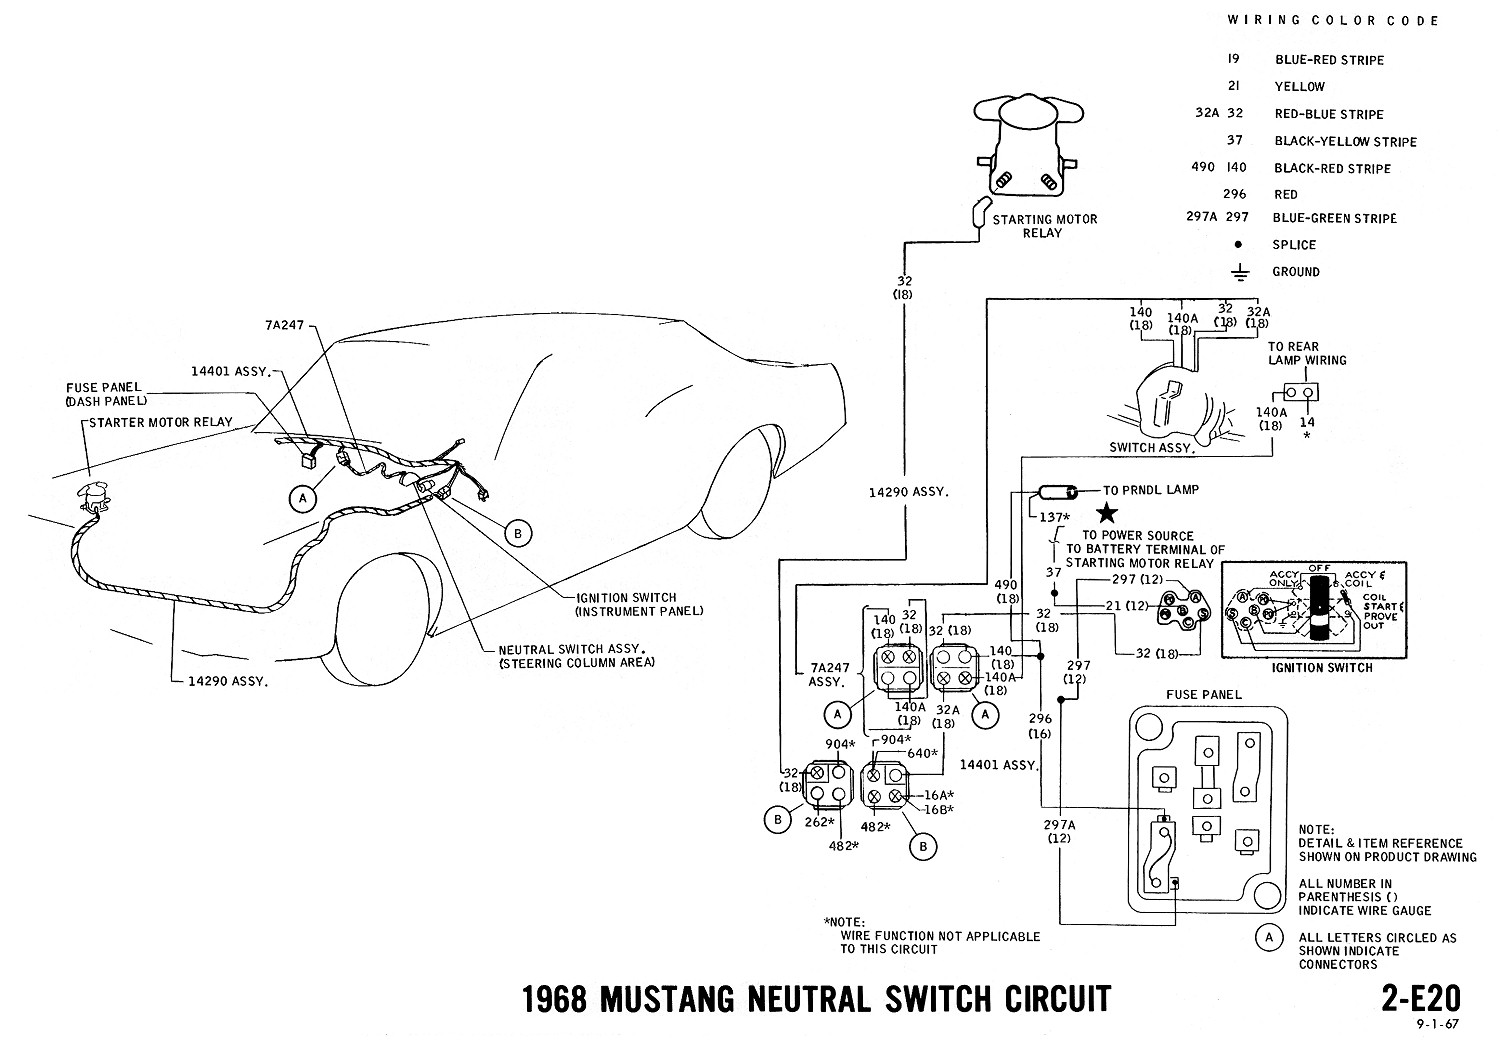 1968 Mustang Wiring Diagrams Evolving Software Ford F100 Wiper Switch Diagram Master Neutral